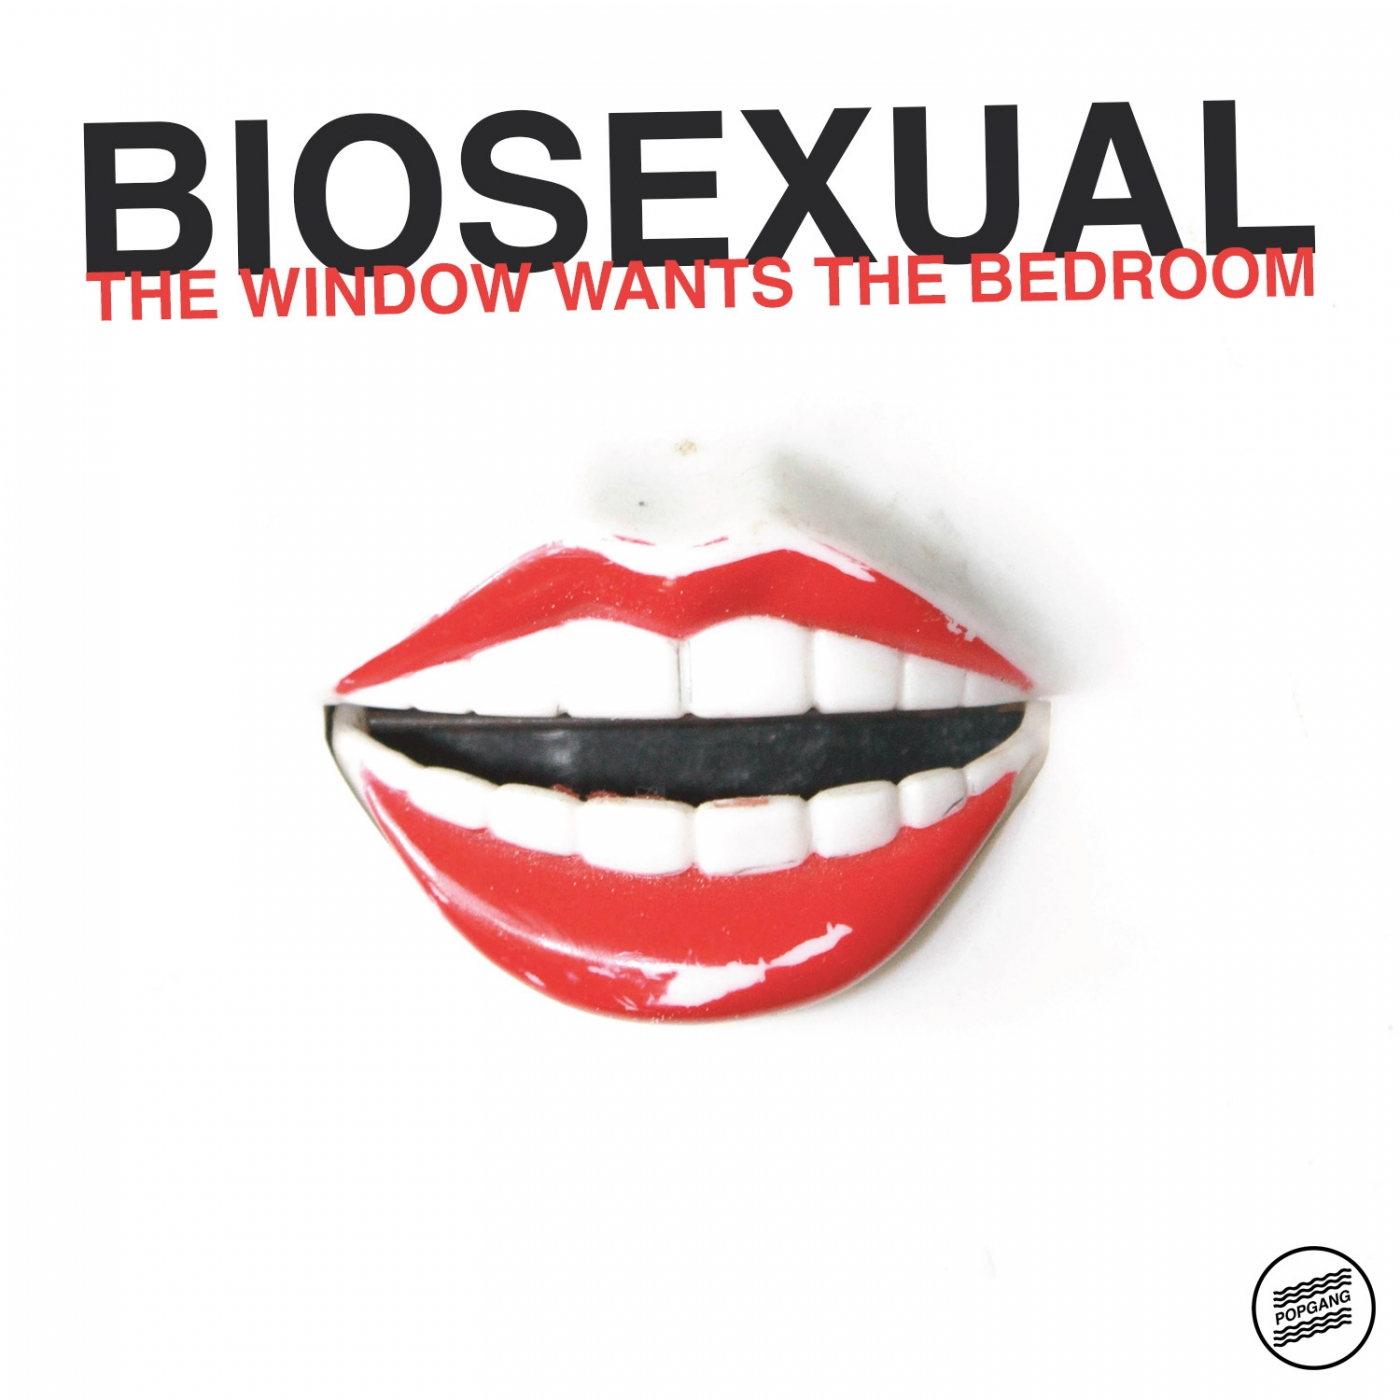 Biosexual - The Window Wants the Bedroom